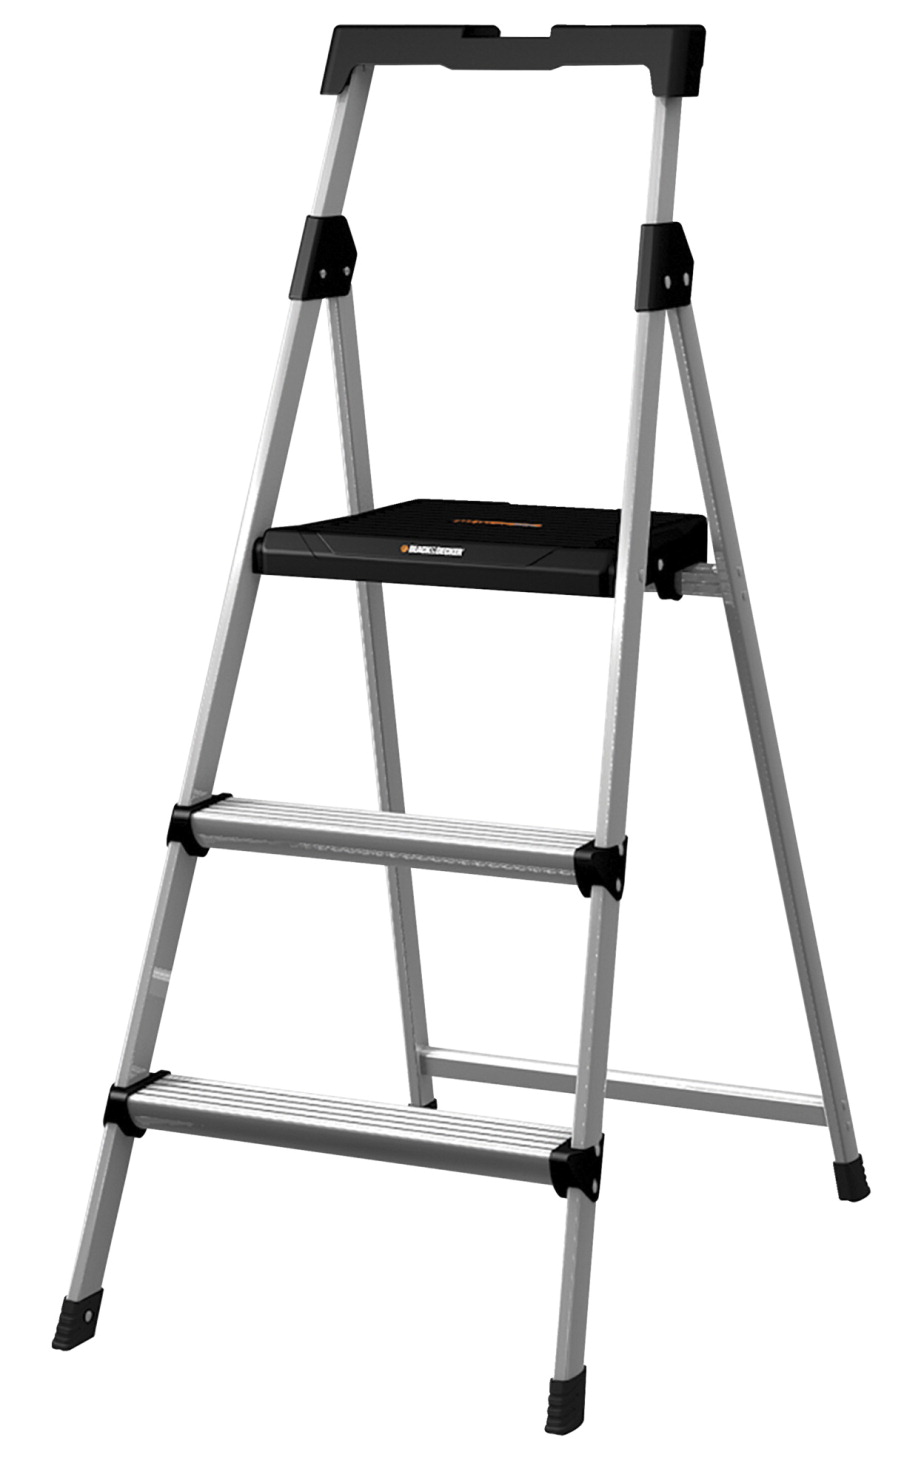 Davidson ladders steel step stool w slots 20 1 2 x 4 x 50 for Escalera aluminio plegable easy